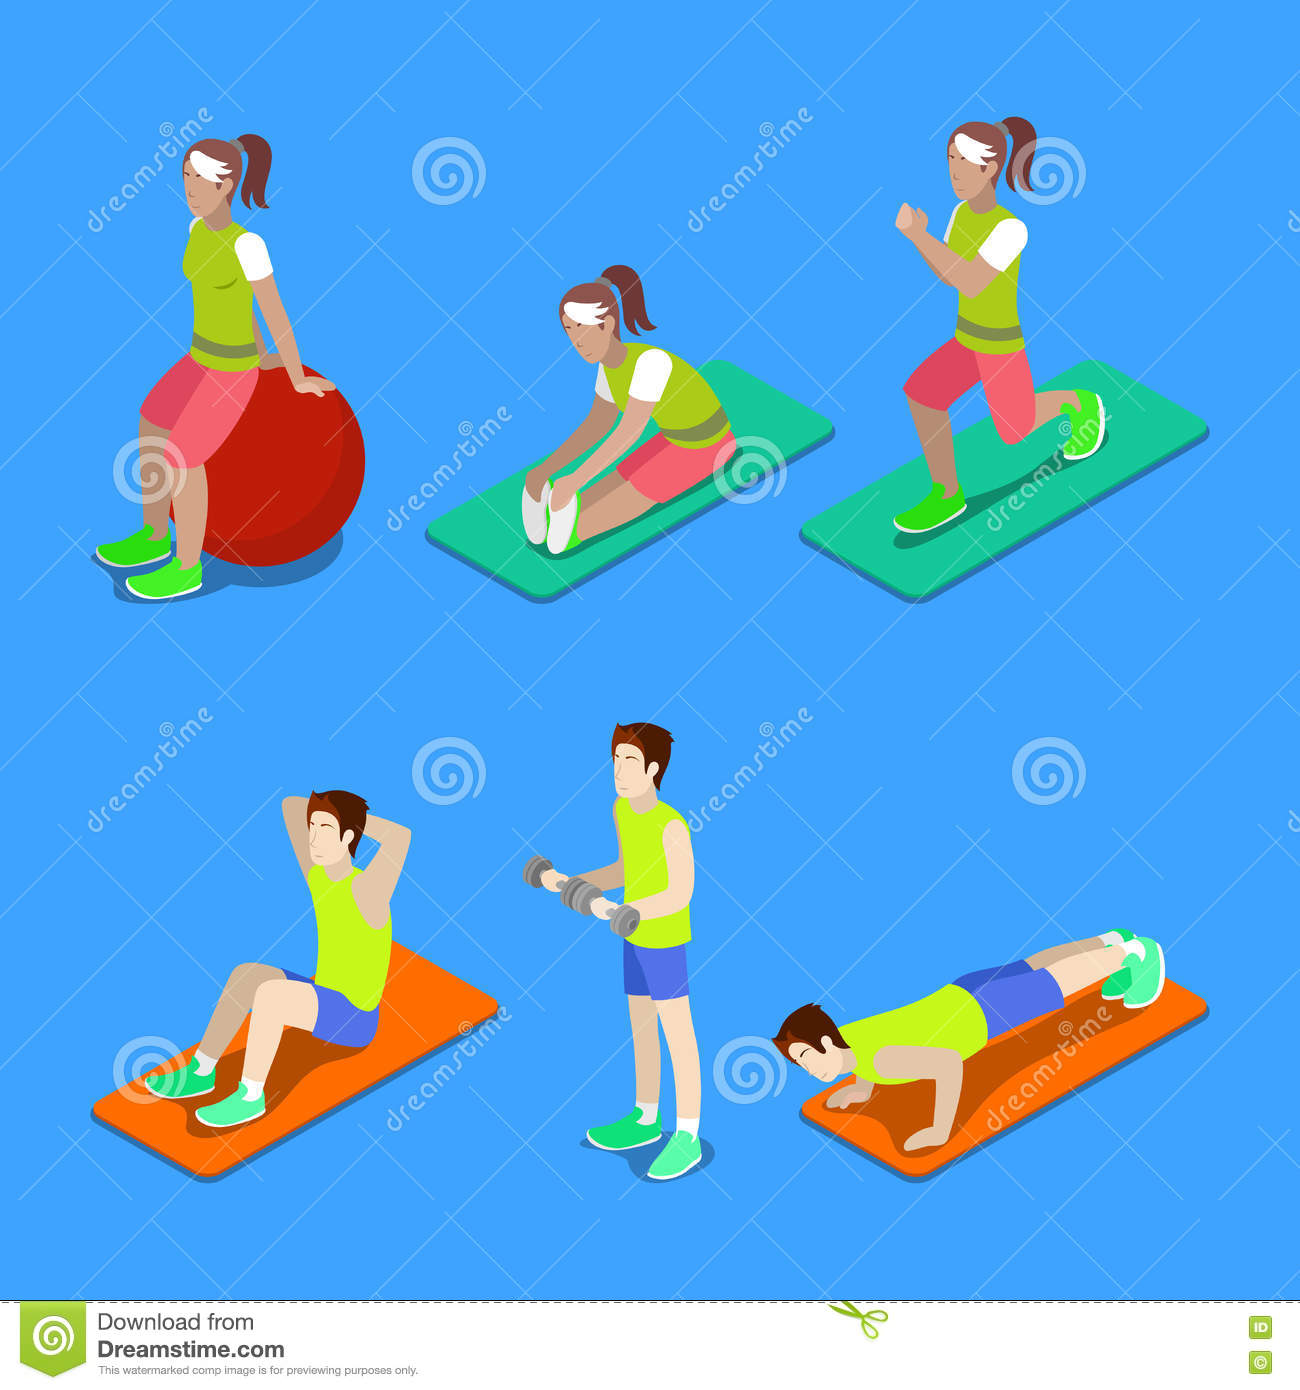 Isometric People. Man and Woman Exercising at the Gym